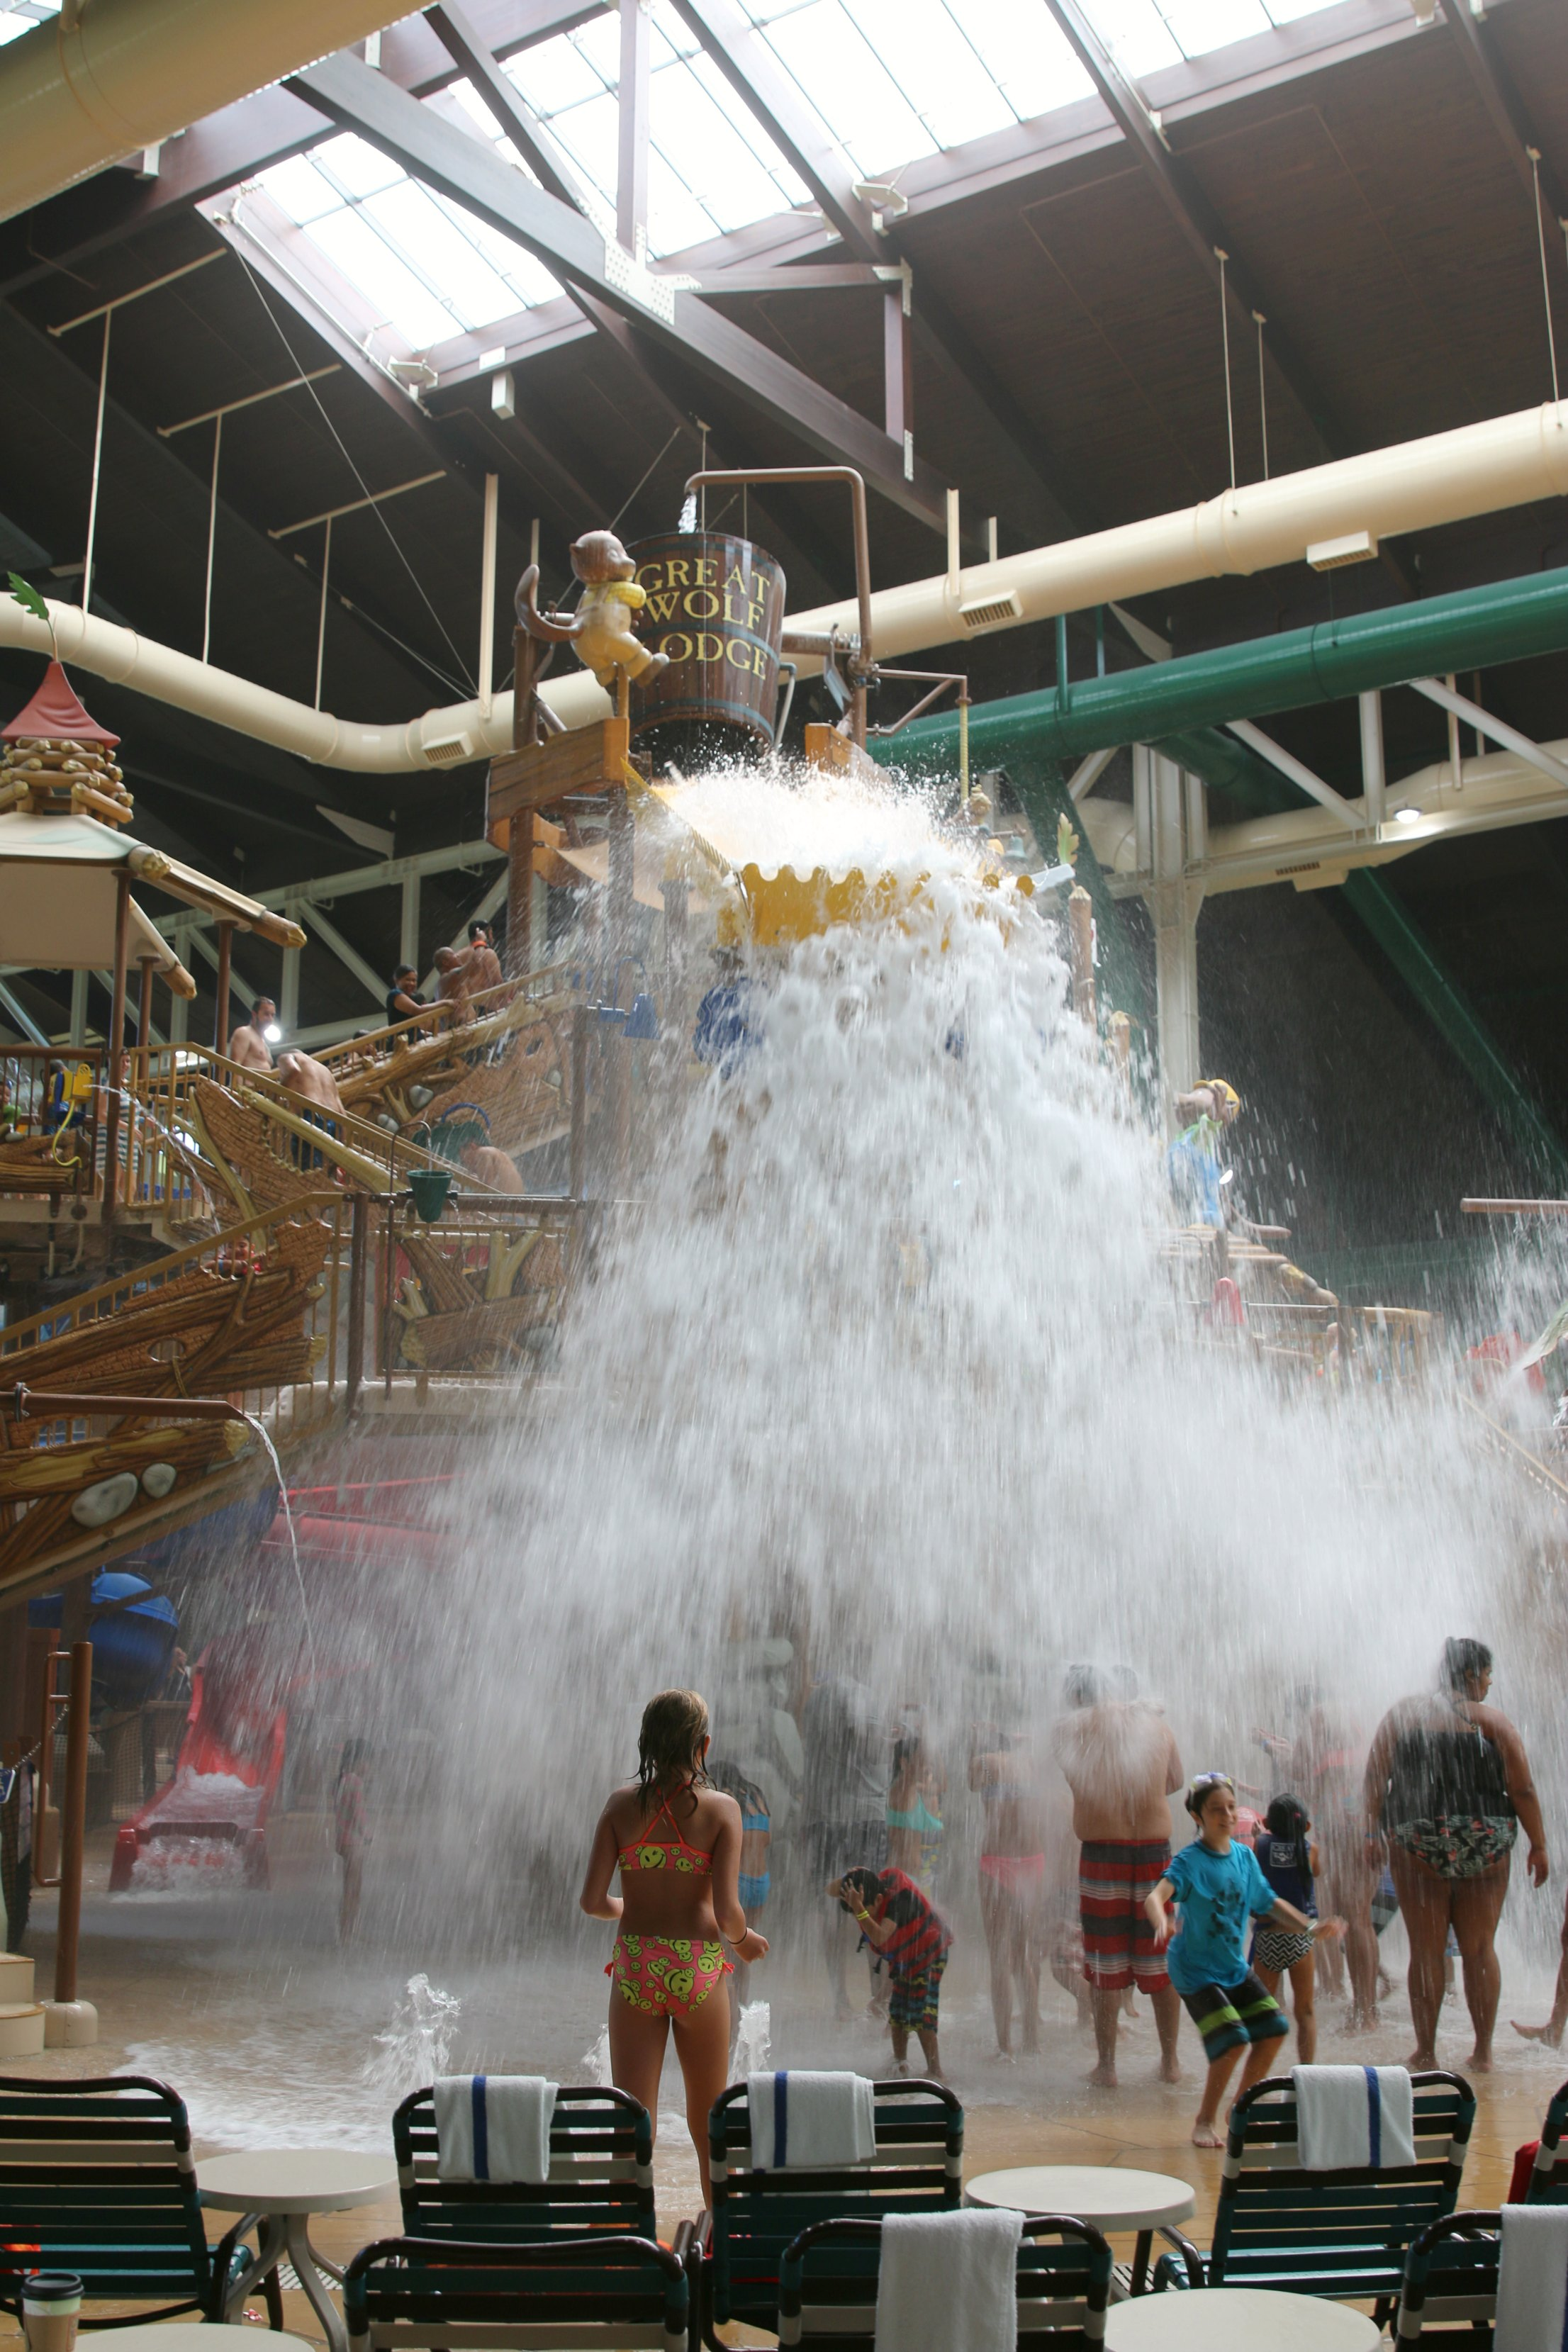 great wolf garden grove water park - Water Parks In Garden Grove